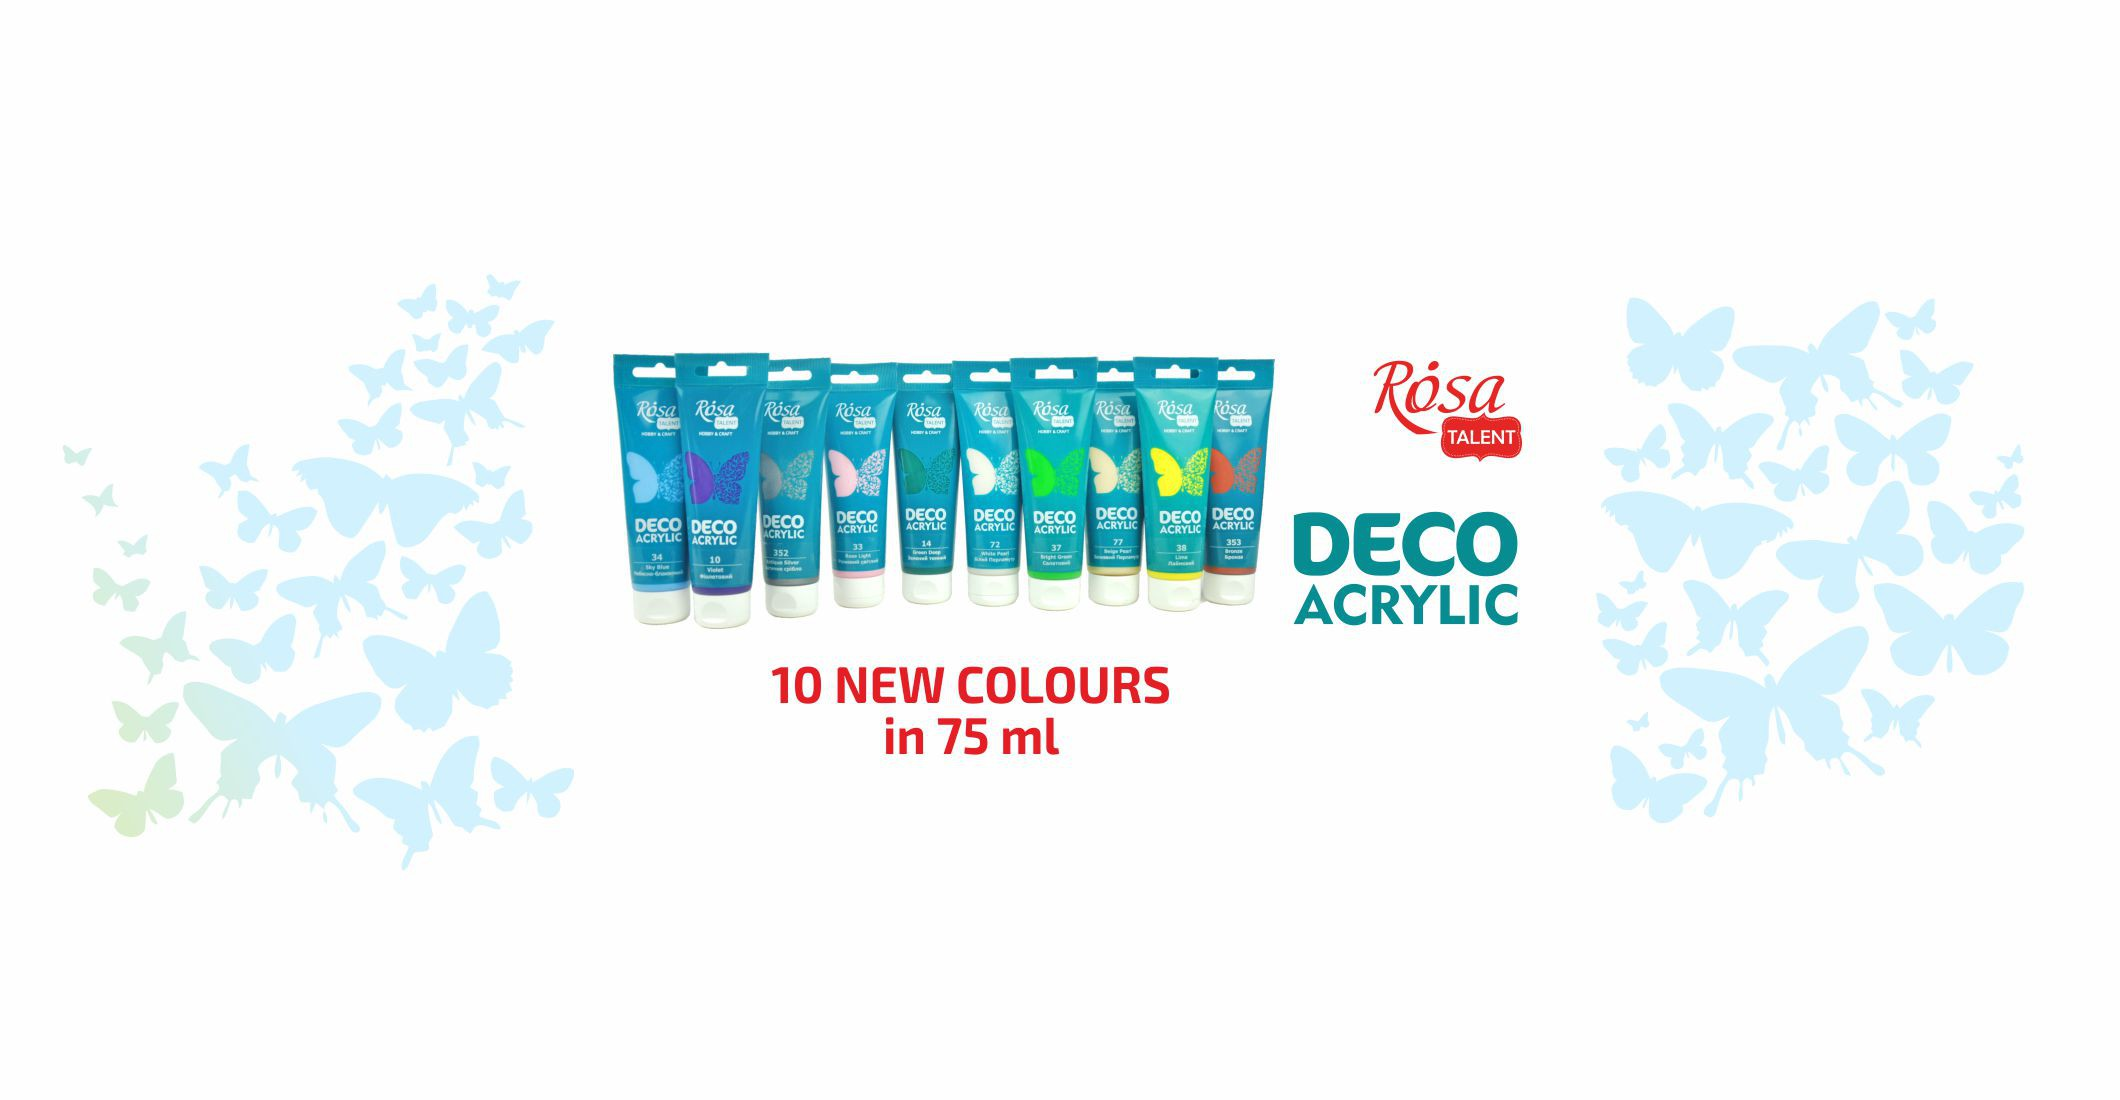 DECO Acrylic 75 ml